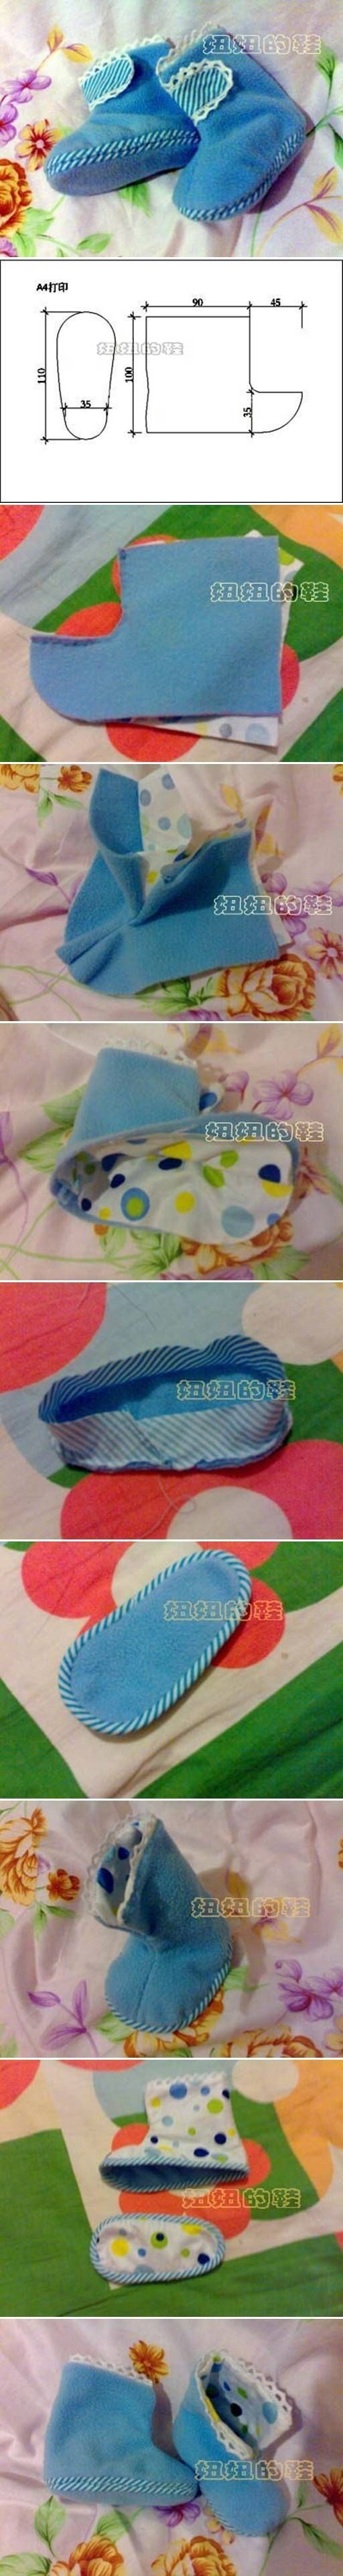 DIY Baby Boots cute blue baby boots diy easy crafts diy ideas diy crafts do it yourself easy diy diy tips diy images do it yourself images diy photos diy pics baby shoes easy bay clothes kids crafts